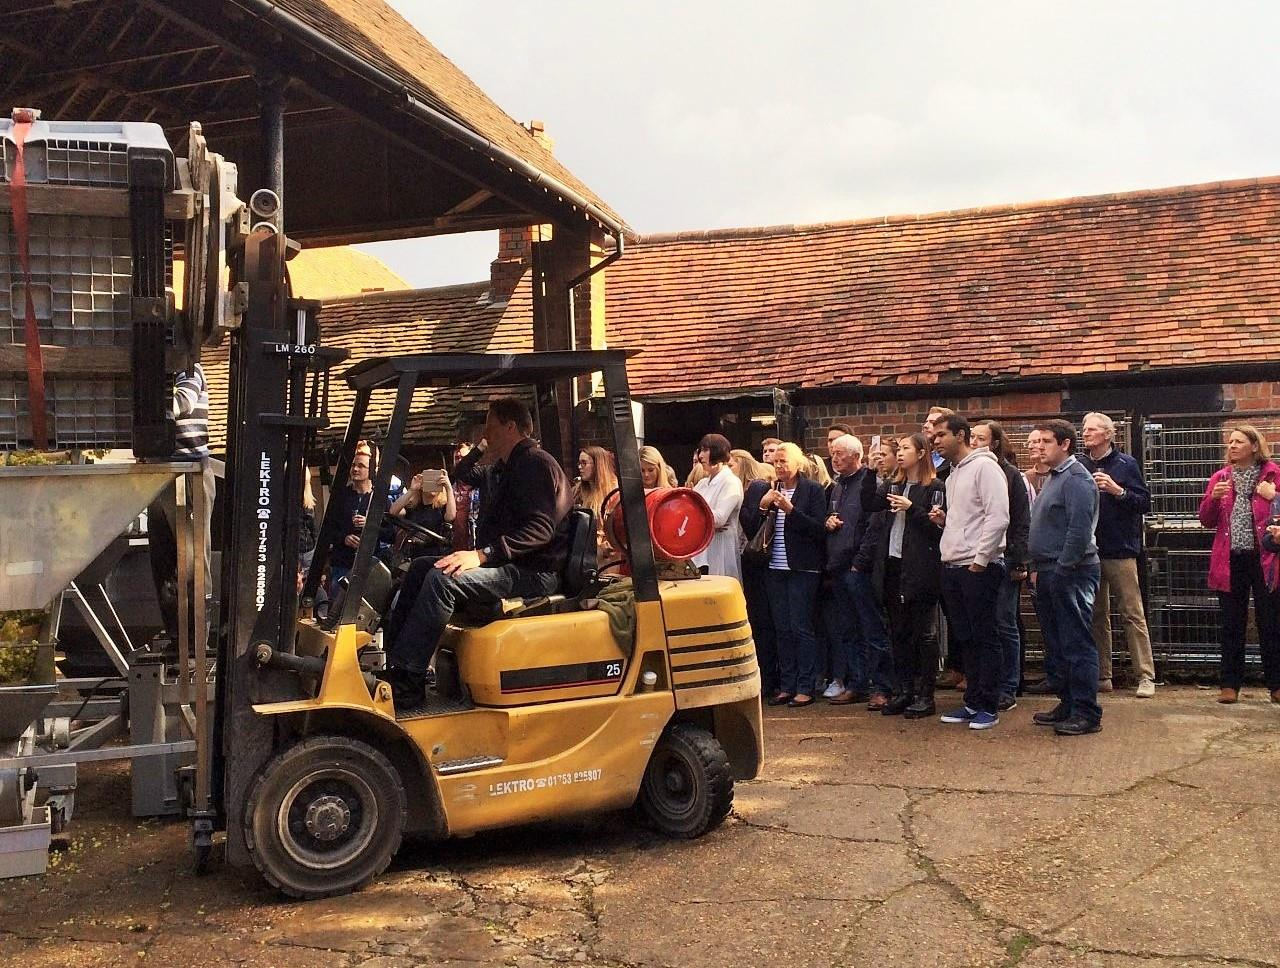 Monday 25th May 2020 at 2 pm - SPRING BANK HOLIDAY - Vineyard Tour & Wine Tasting